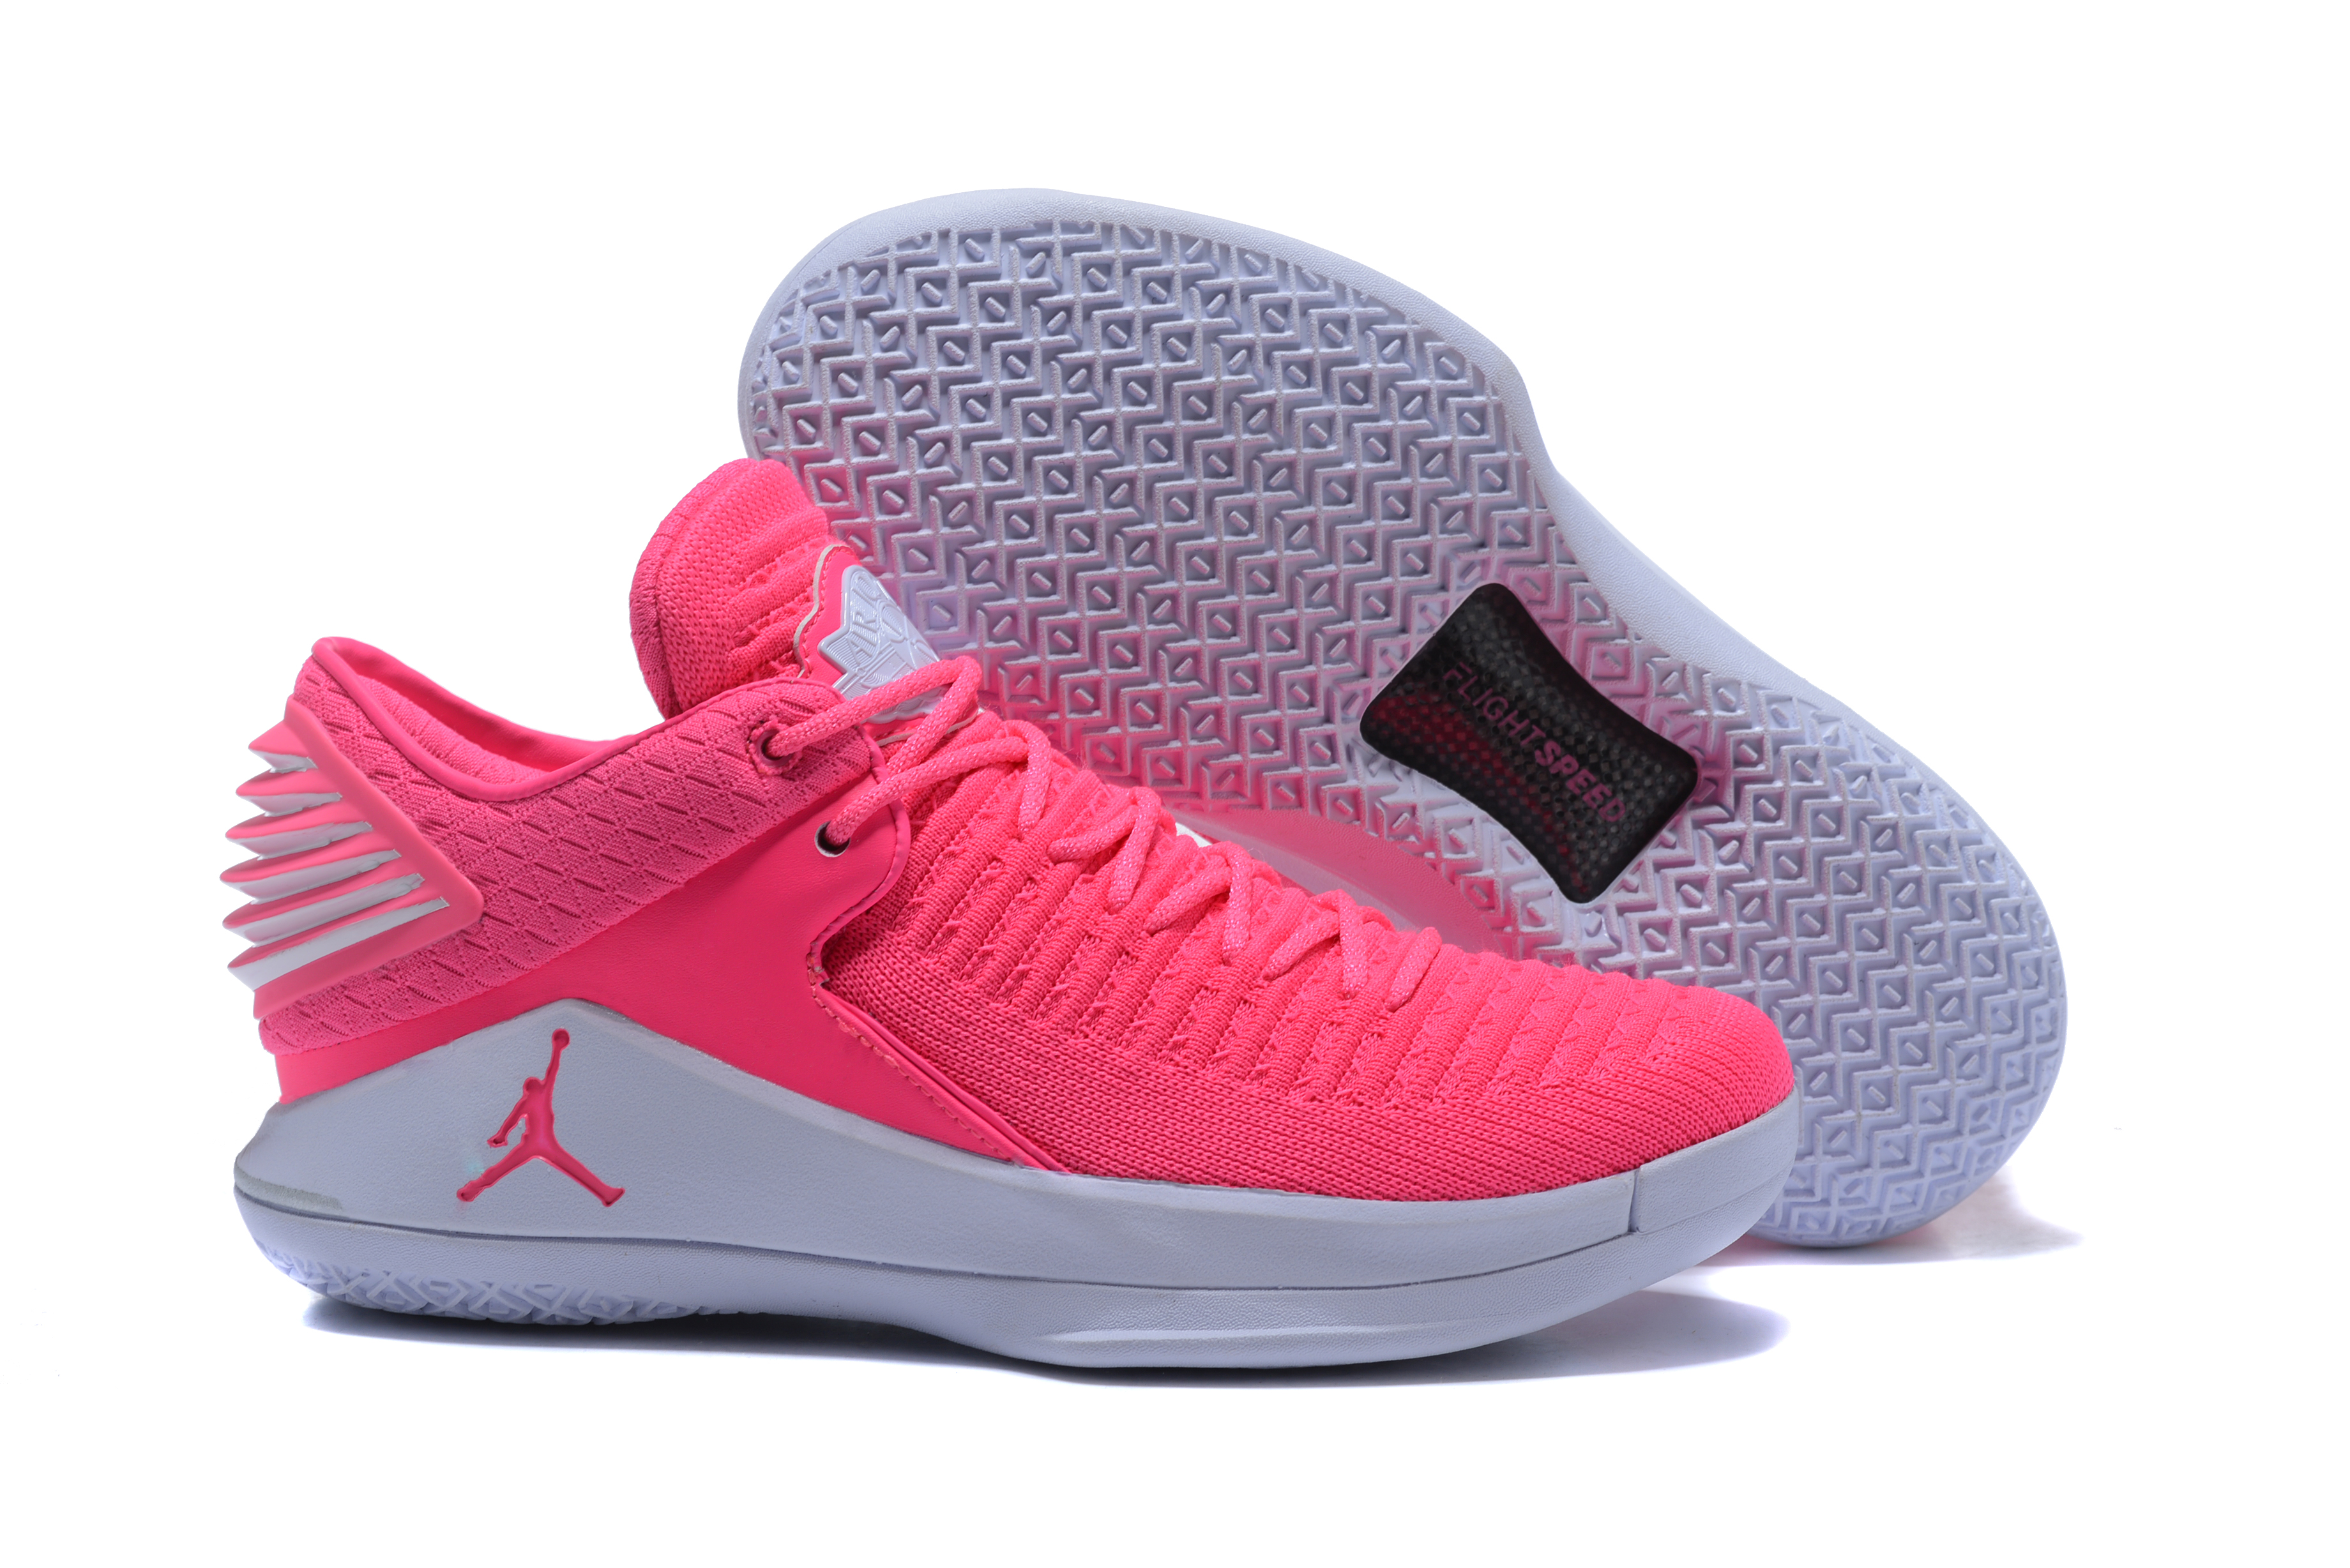 New Air Jordan 32 Breast Cancer Shoes